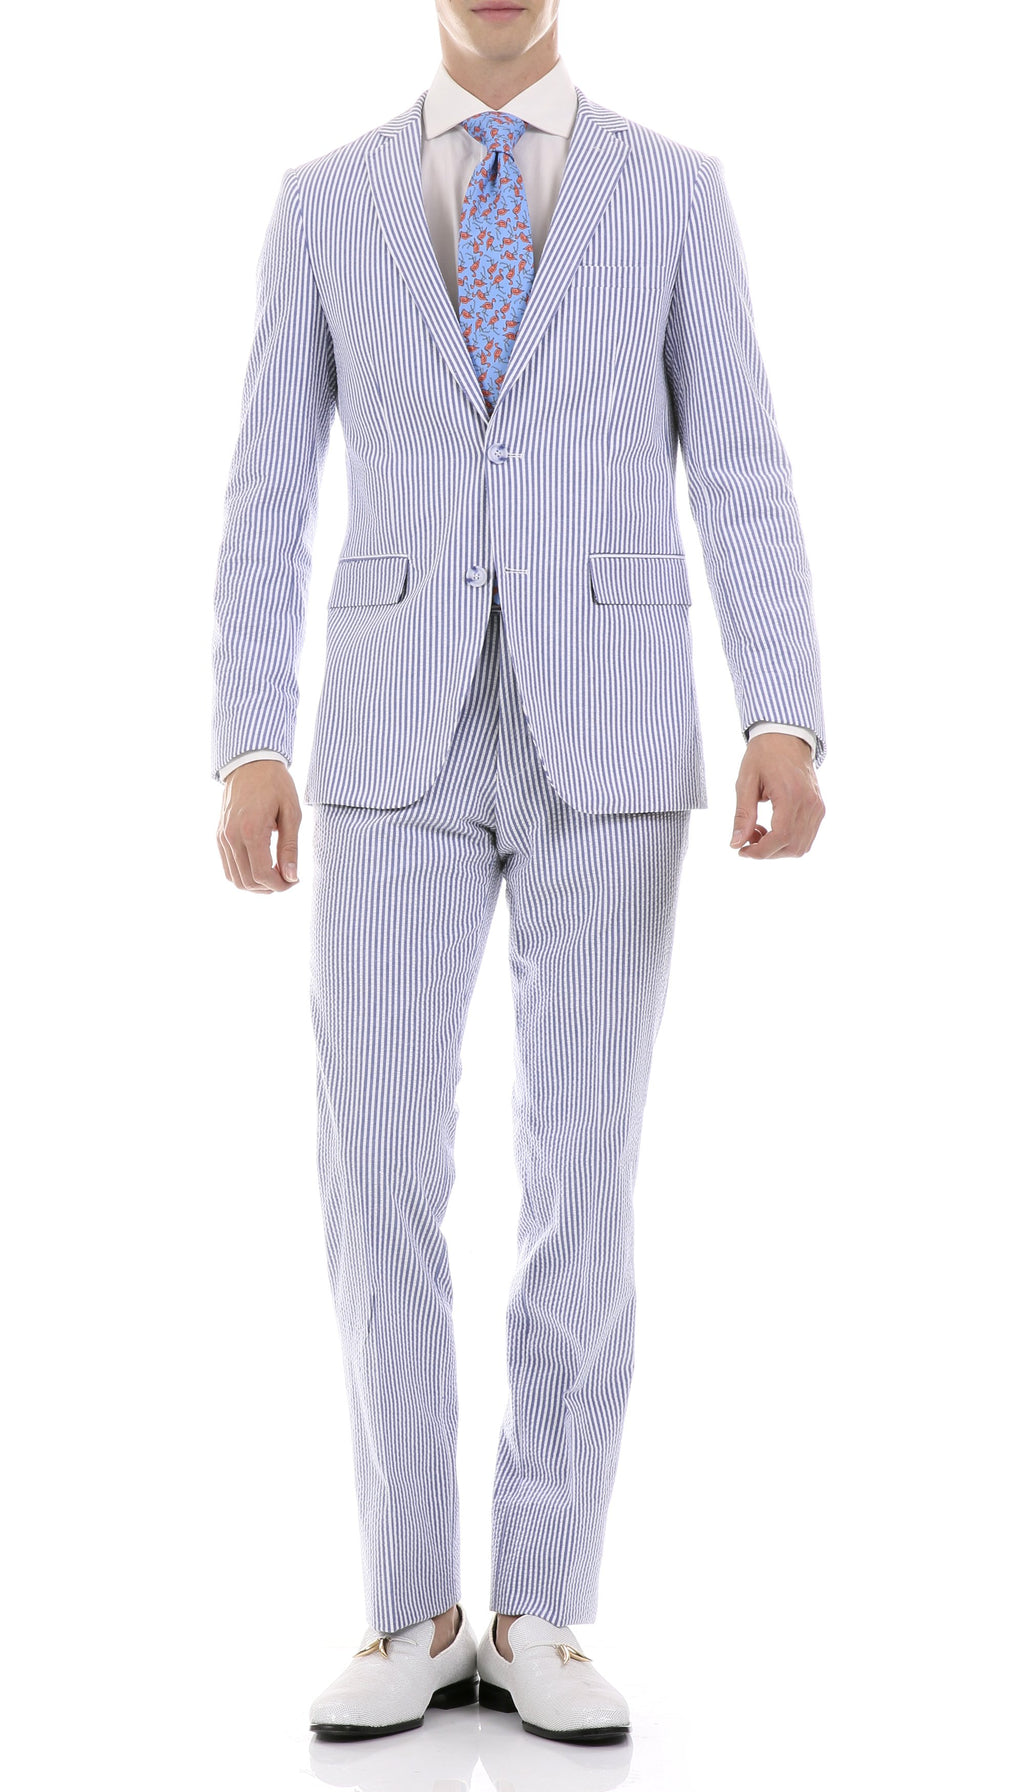 Premium Comfort Cotton Slim Blue Seersucker Suit - Giorgio's Menswear